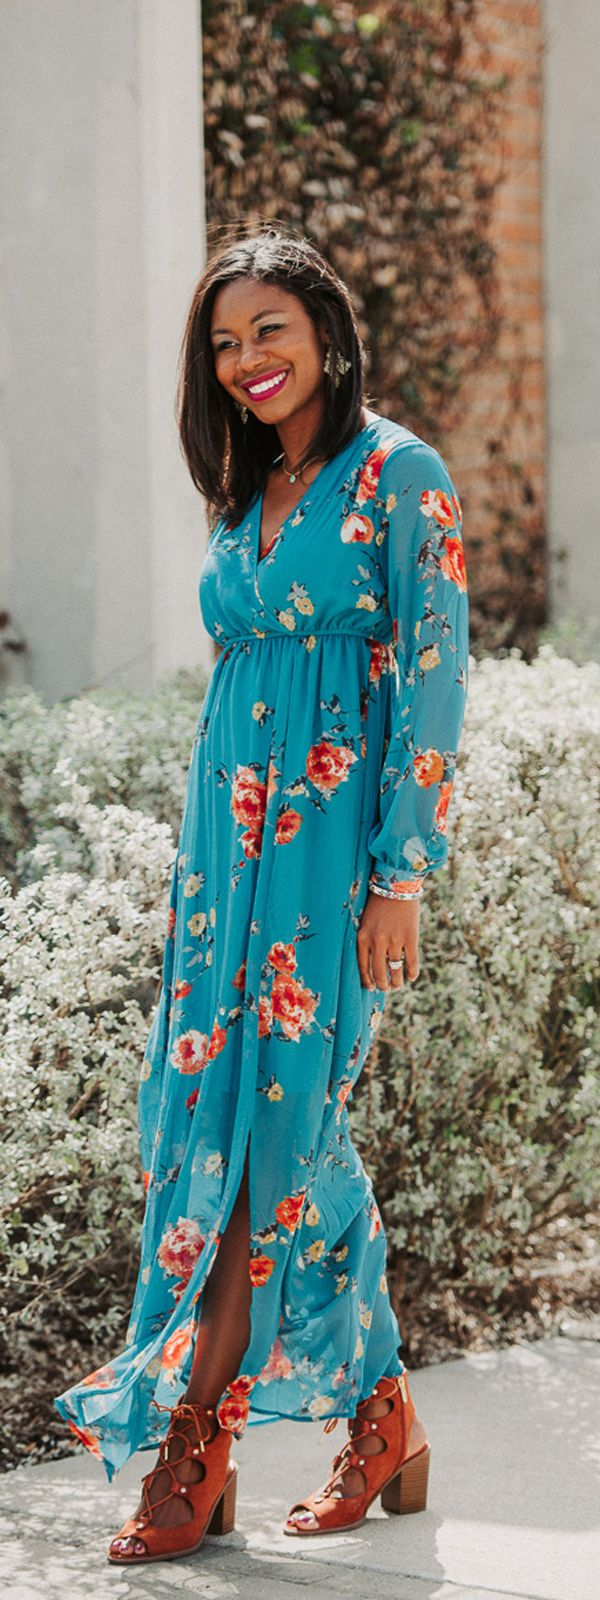 Spring style from PinkBlush, teal floral print chiffon dress for maternity or non-maternity. Spring fashion SidelineSocilaite.com